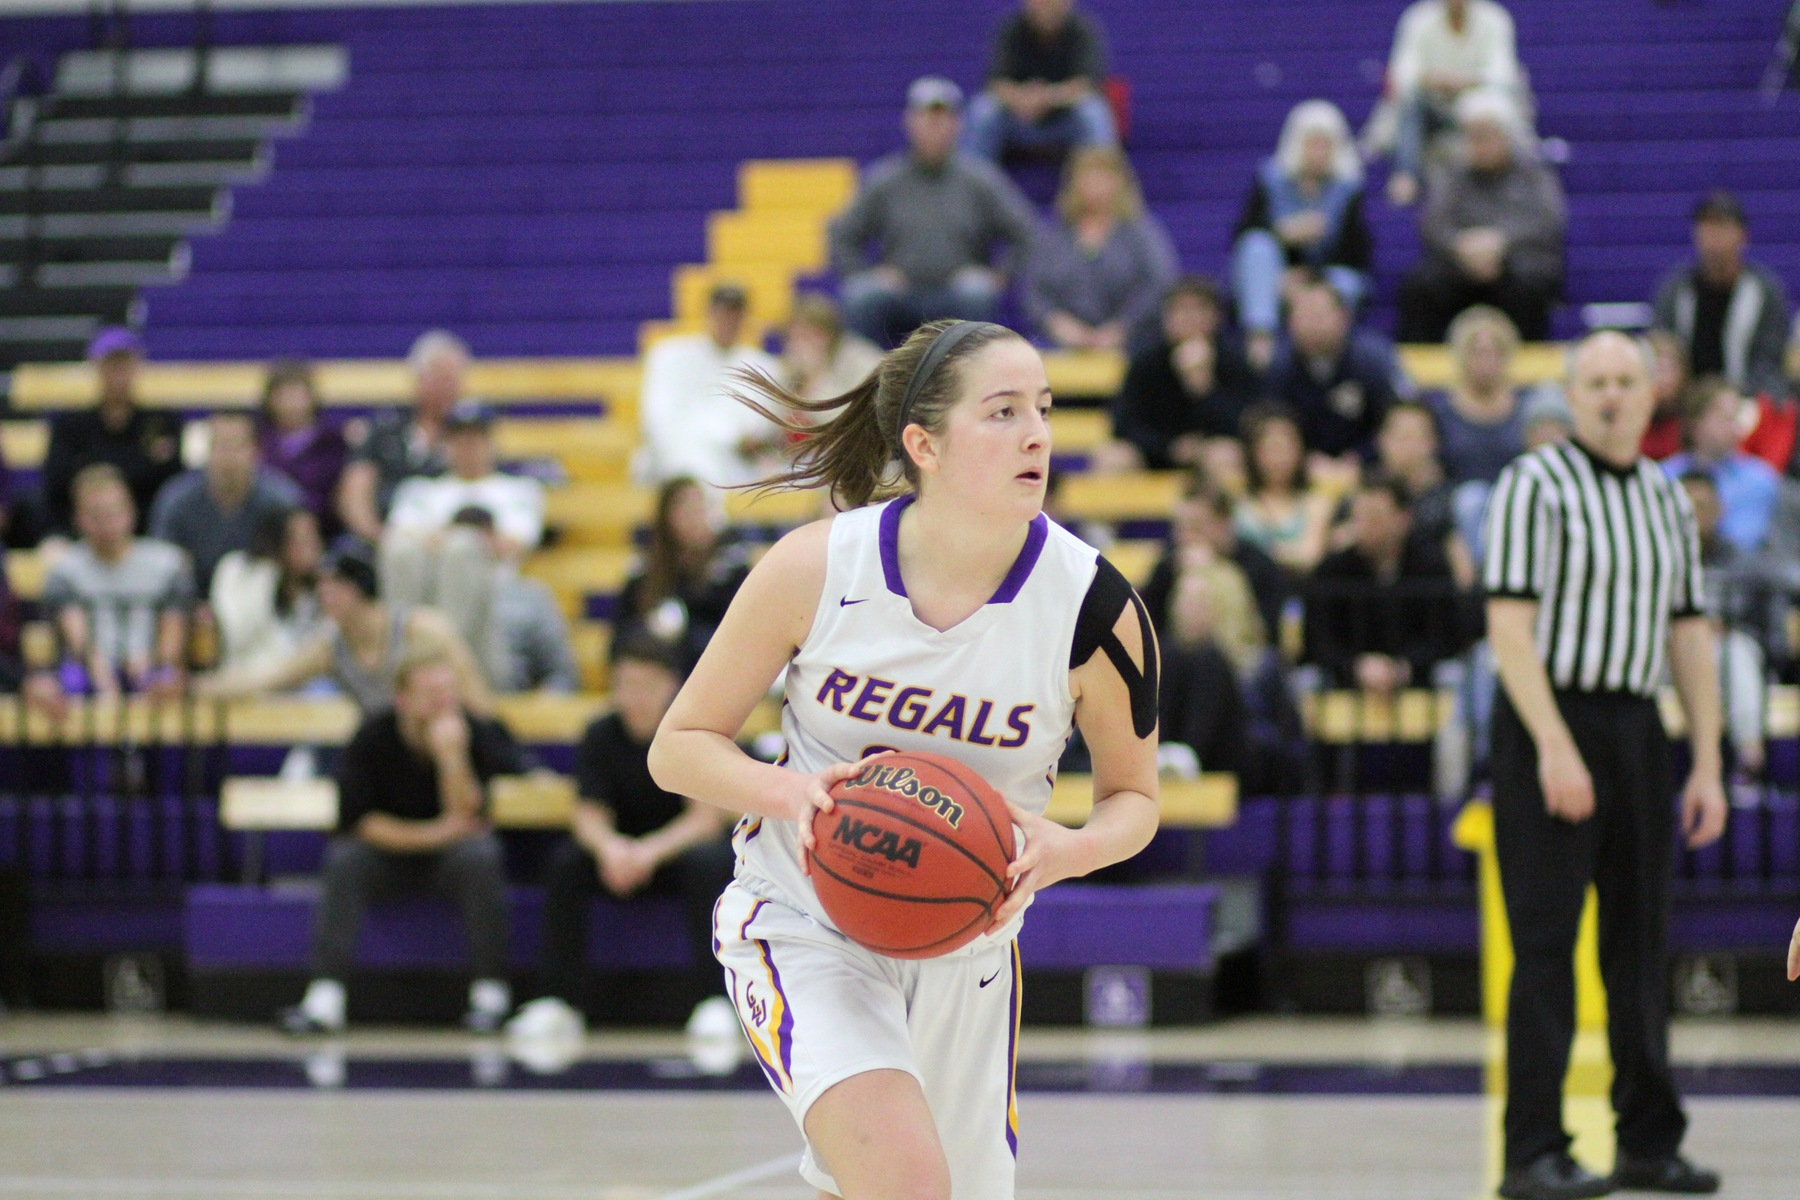 Regals fall to Mustangs